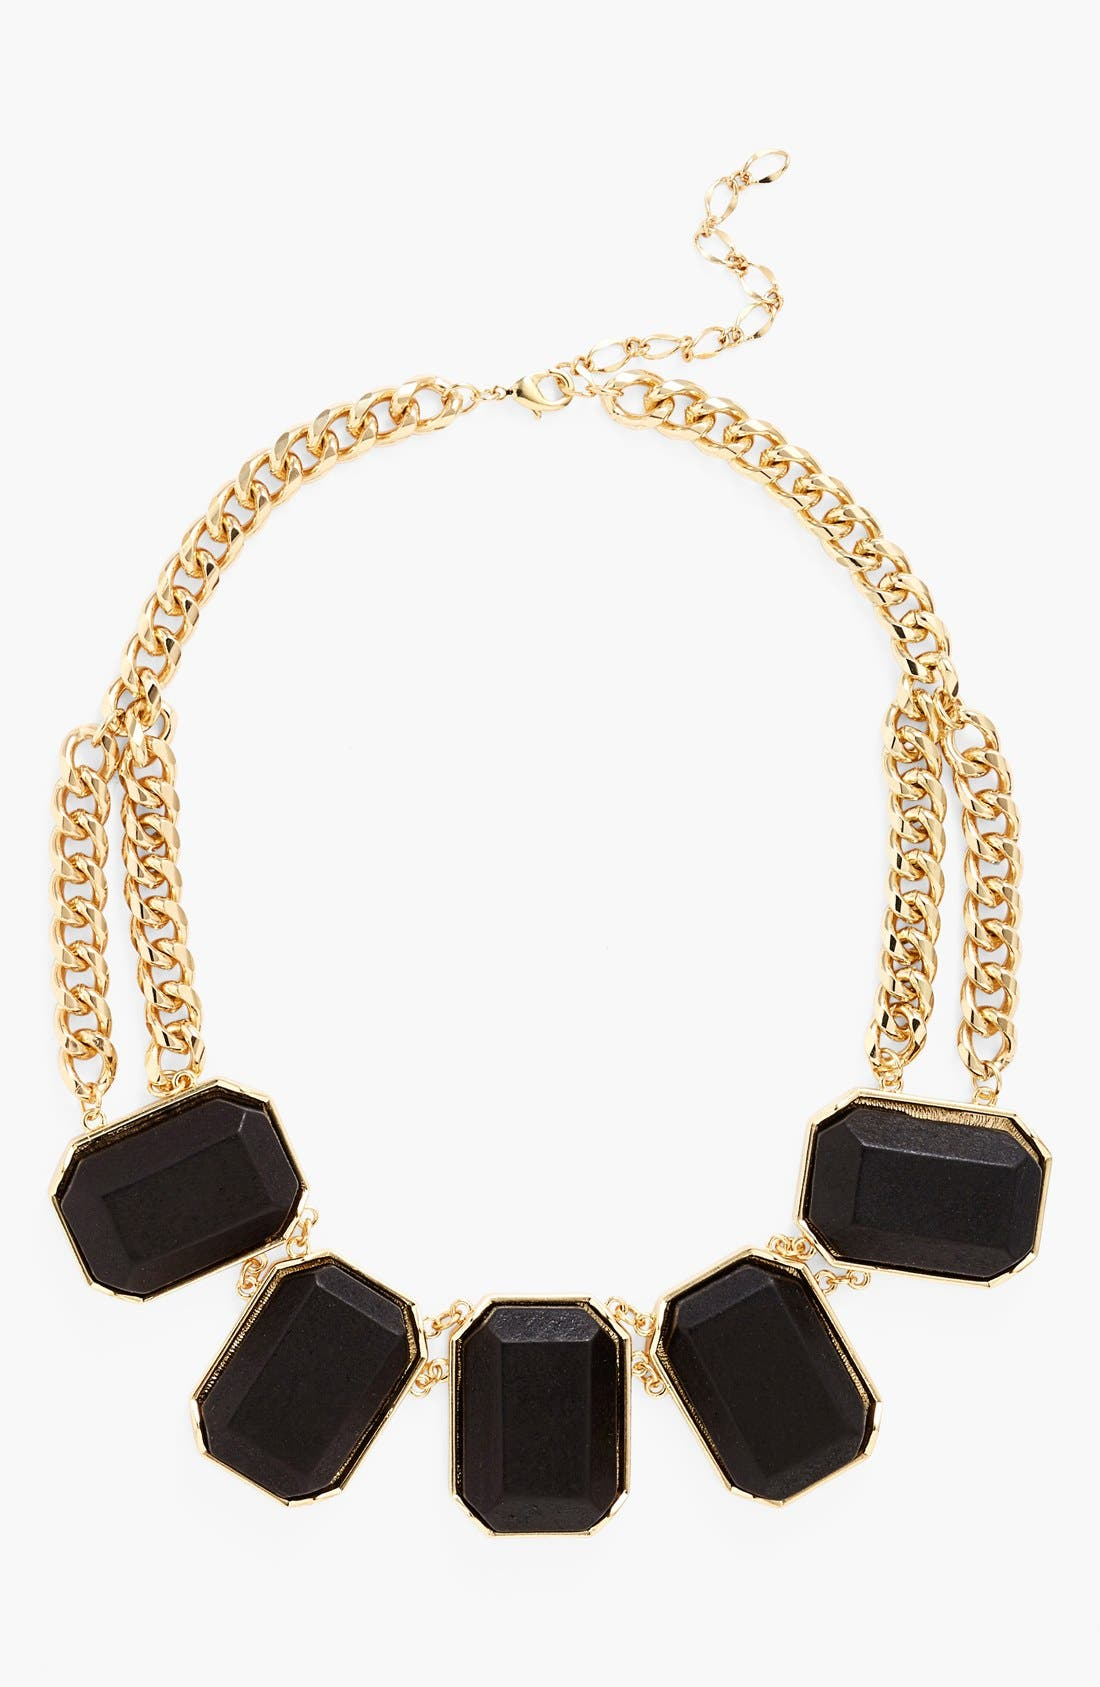 Alternate Image 1 Selected - Nordstrom 'Safari' Wood Block Frontal Necklace